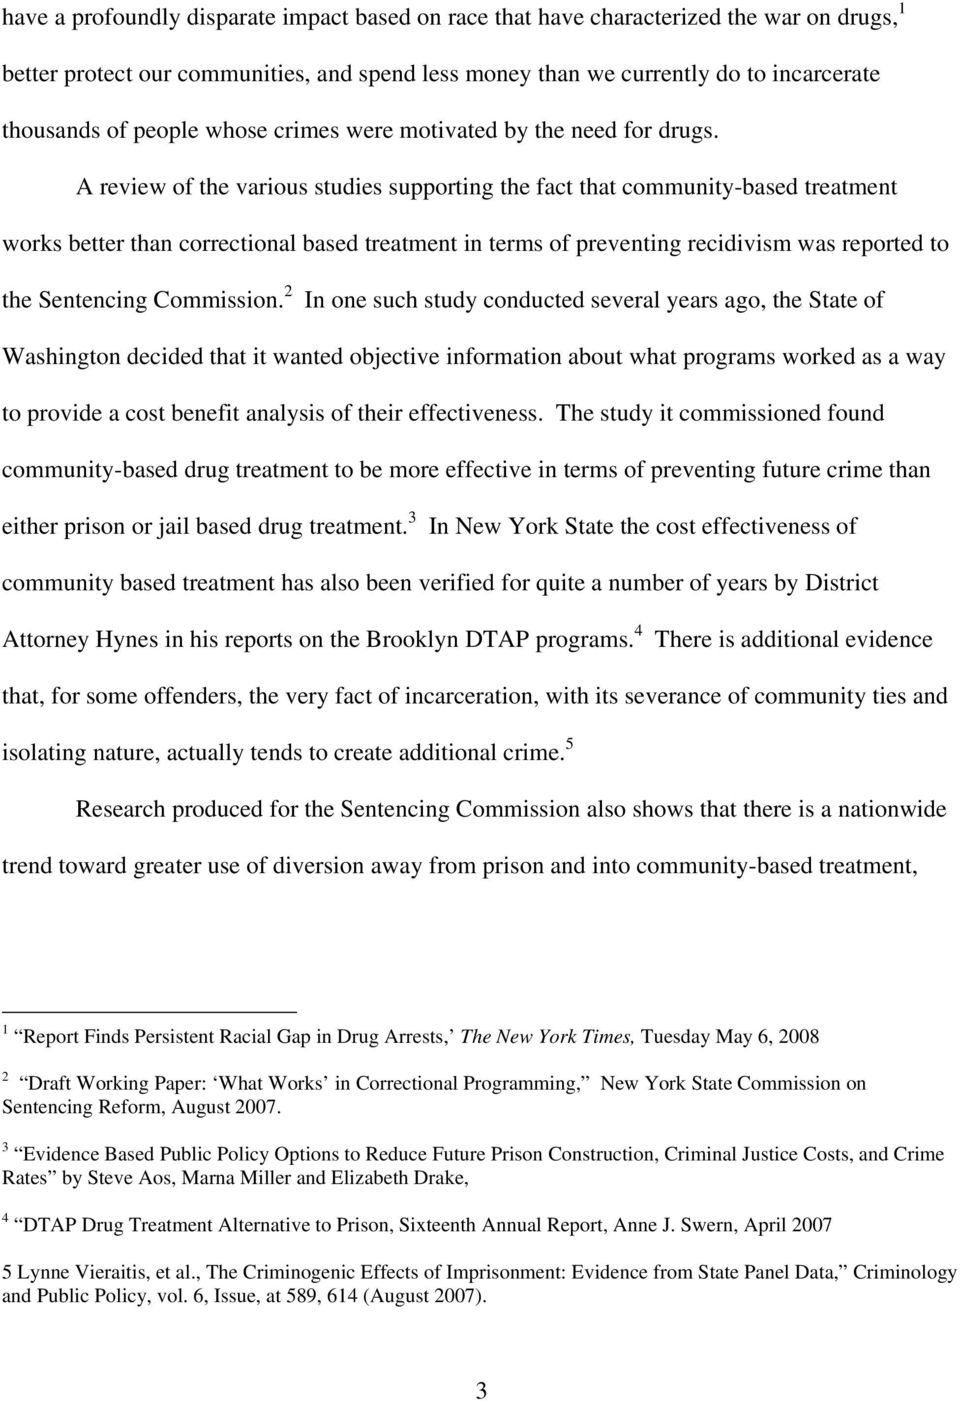 A review of the various studies supporting the fact that community-based treatment works better than correctional based treatment in terms of preventing recidivism was reported to the Sentencing